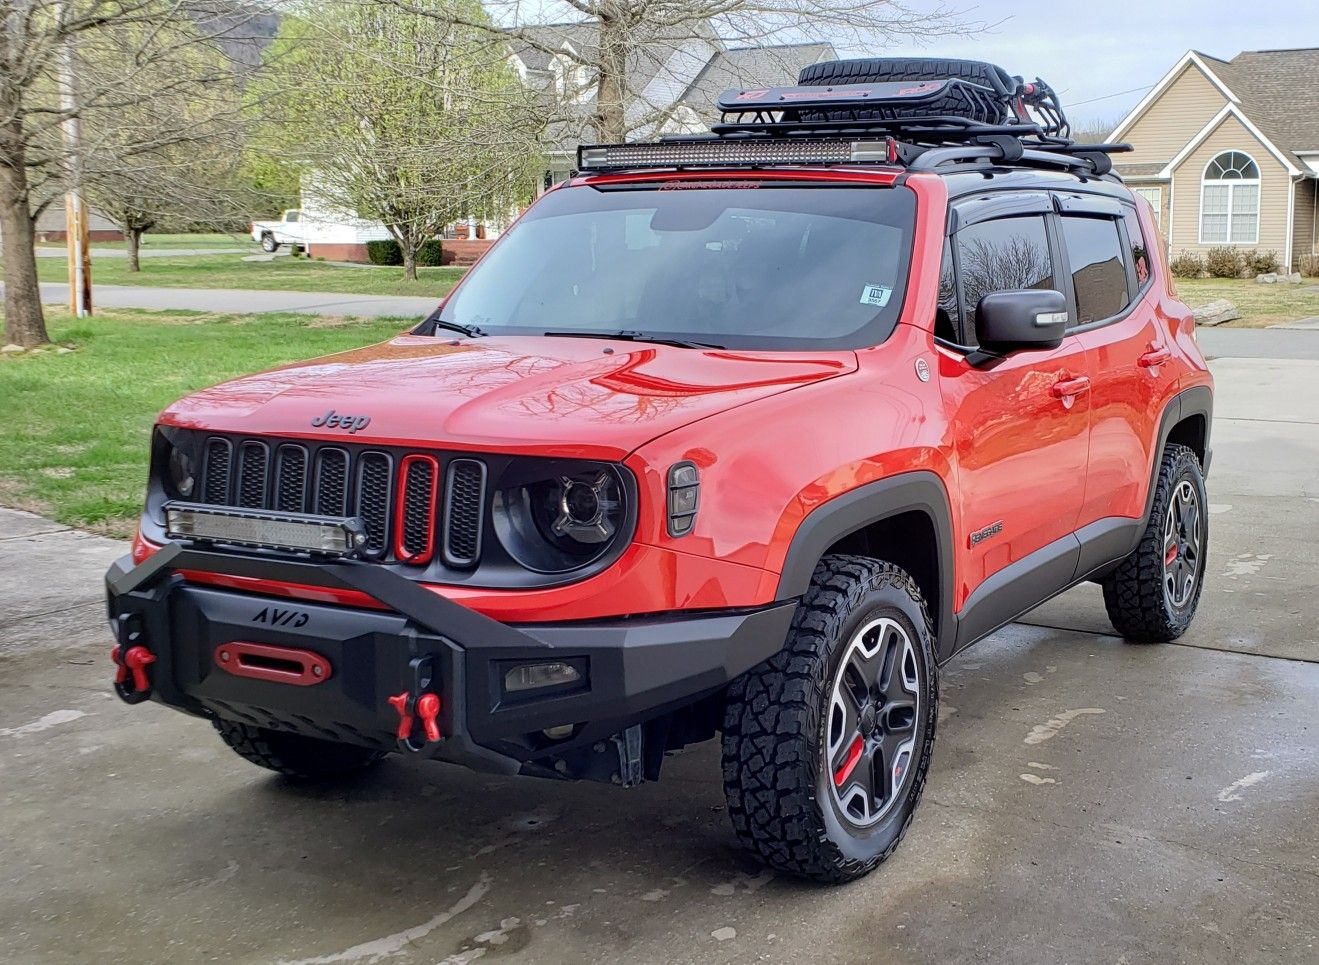 Havek The Jeep Jeep Renegade Trailhawk Jeep Trailhawk Jeep